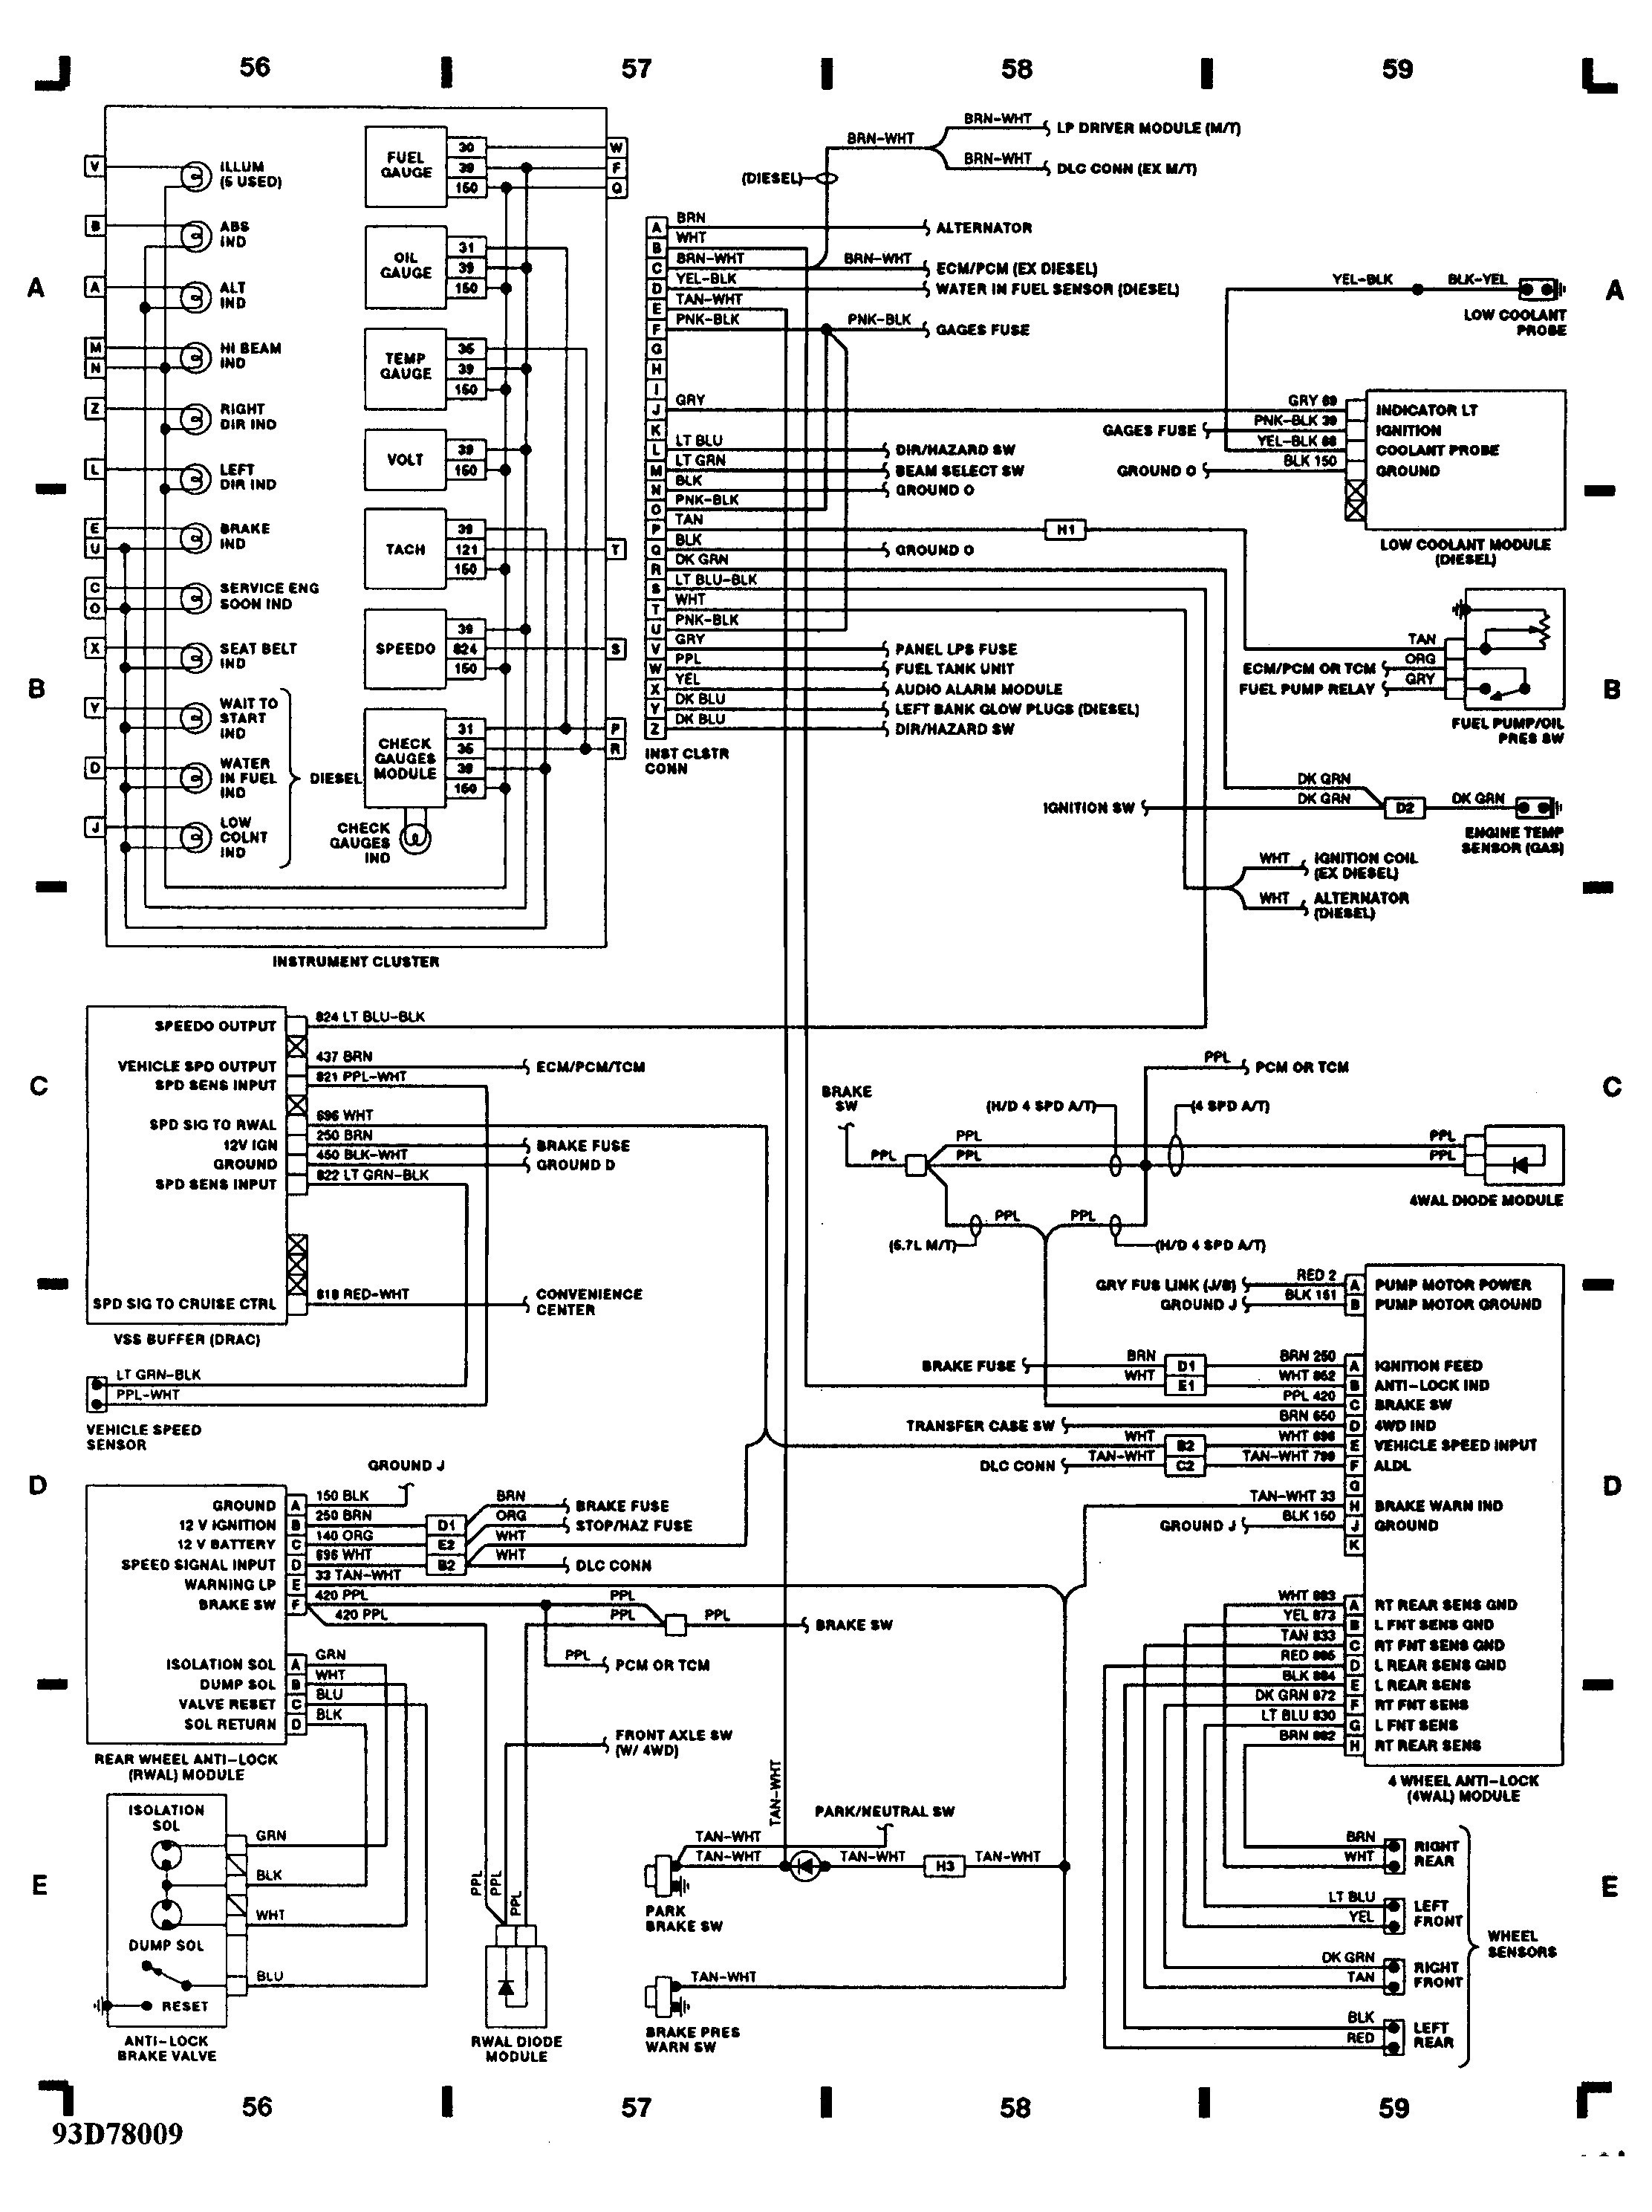 Gm 4 3 Liter Engine Vacuum Diagram List Of Schematic Circuit 1985 Chevy 305 Wiring V6 Head Trusted Diagrams U2022 Rh Inspiralni Co